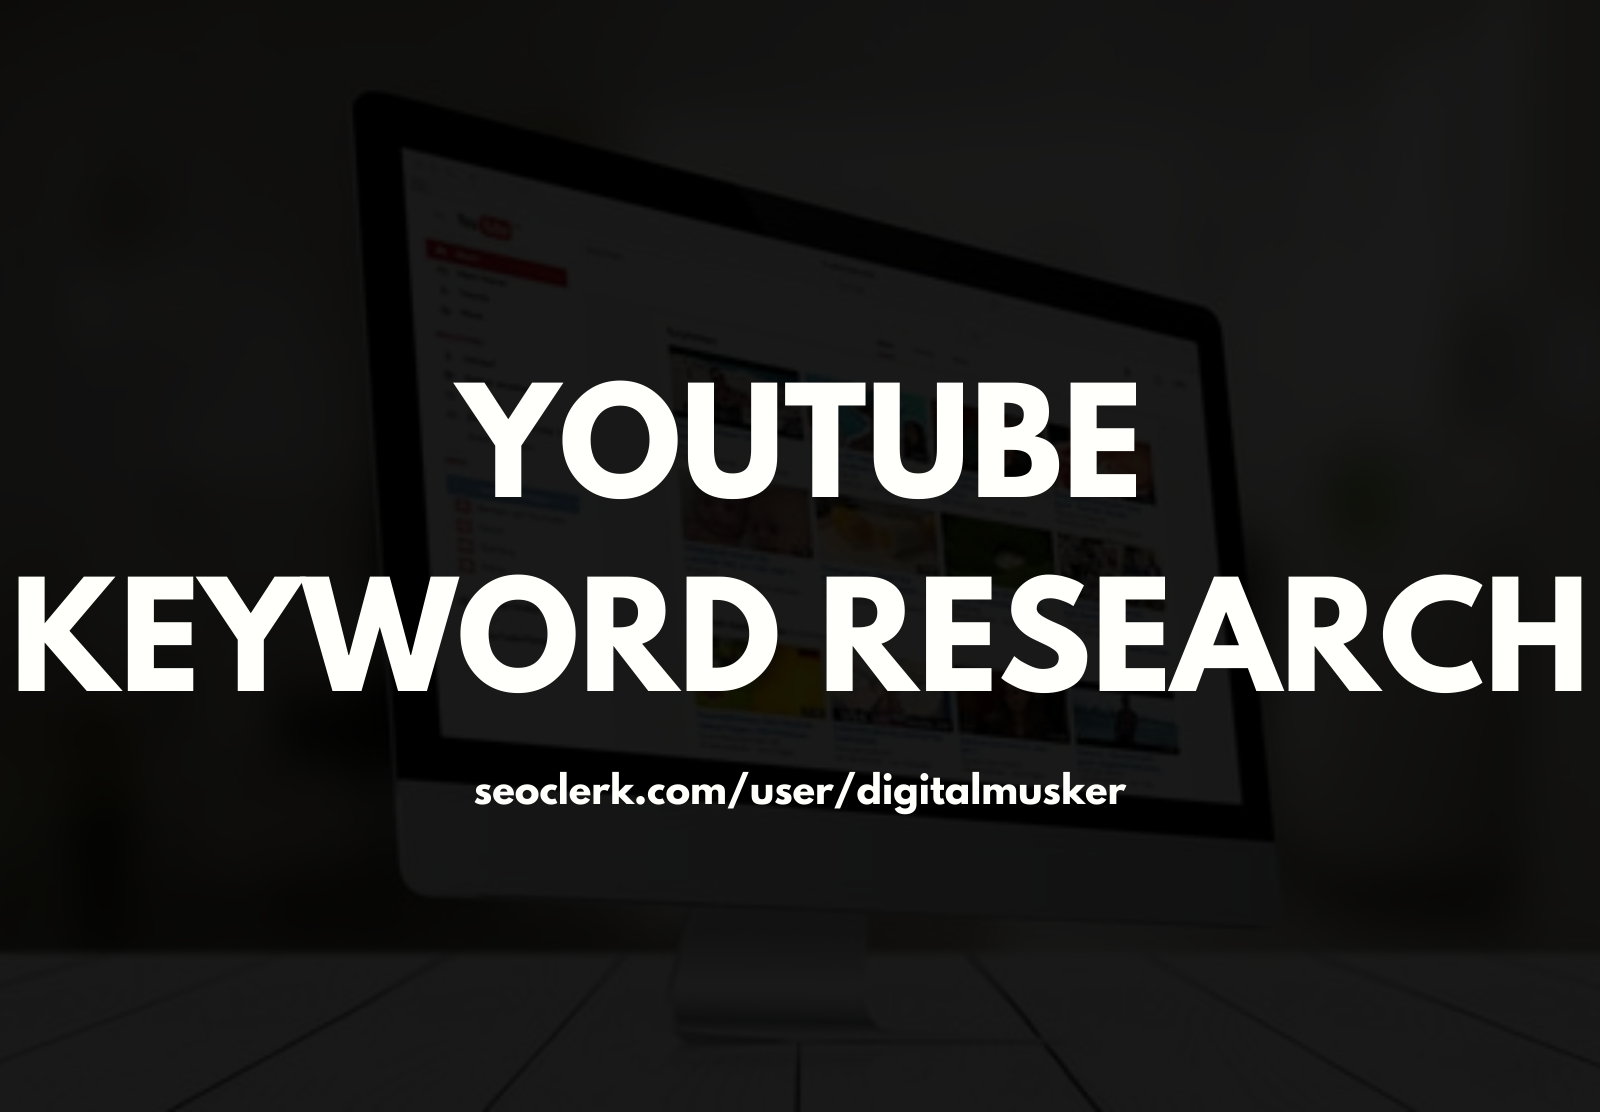 YouTube SEO Keyword Research For Video Ideas